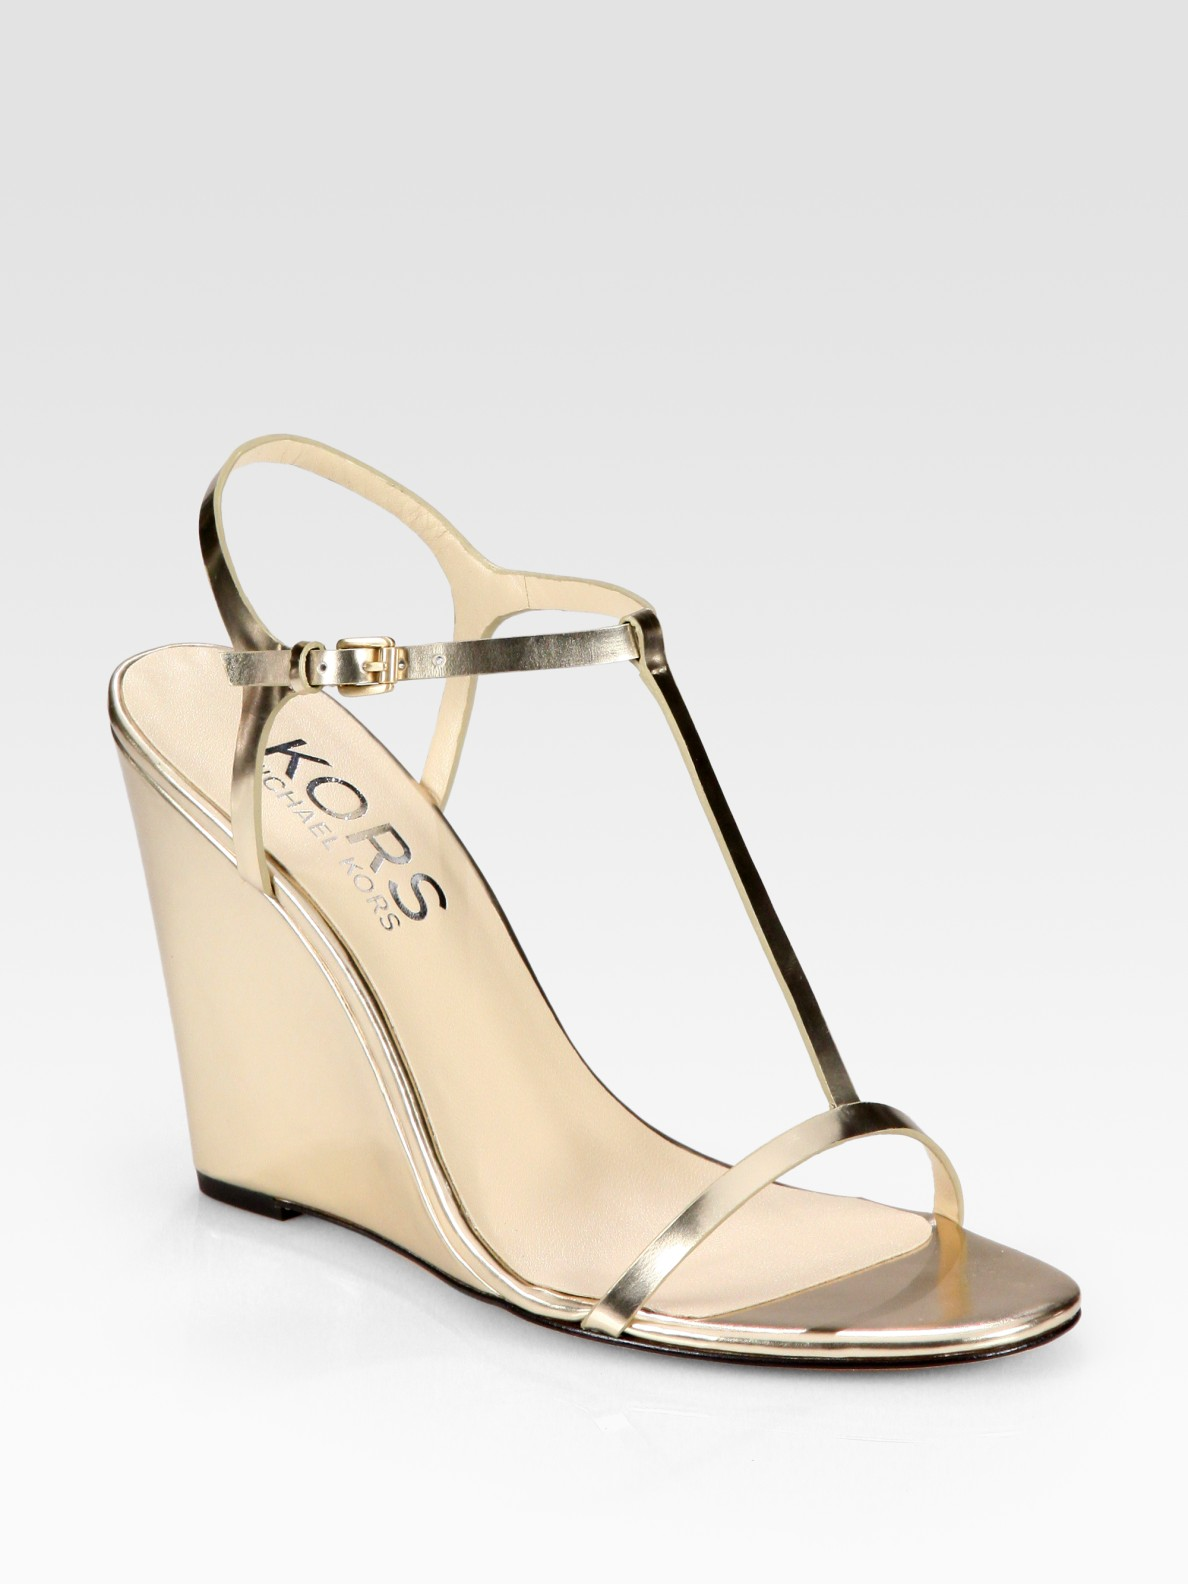 Metallic Wedge Heels nxcIoZ3E